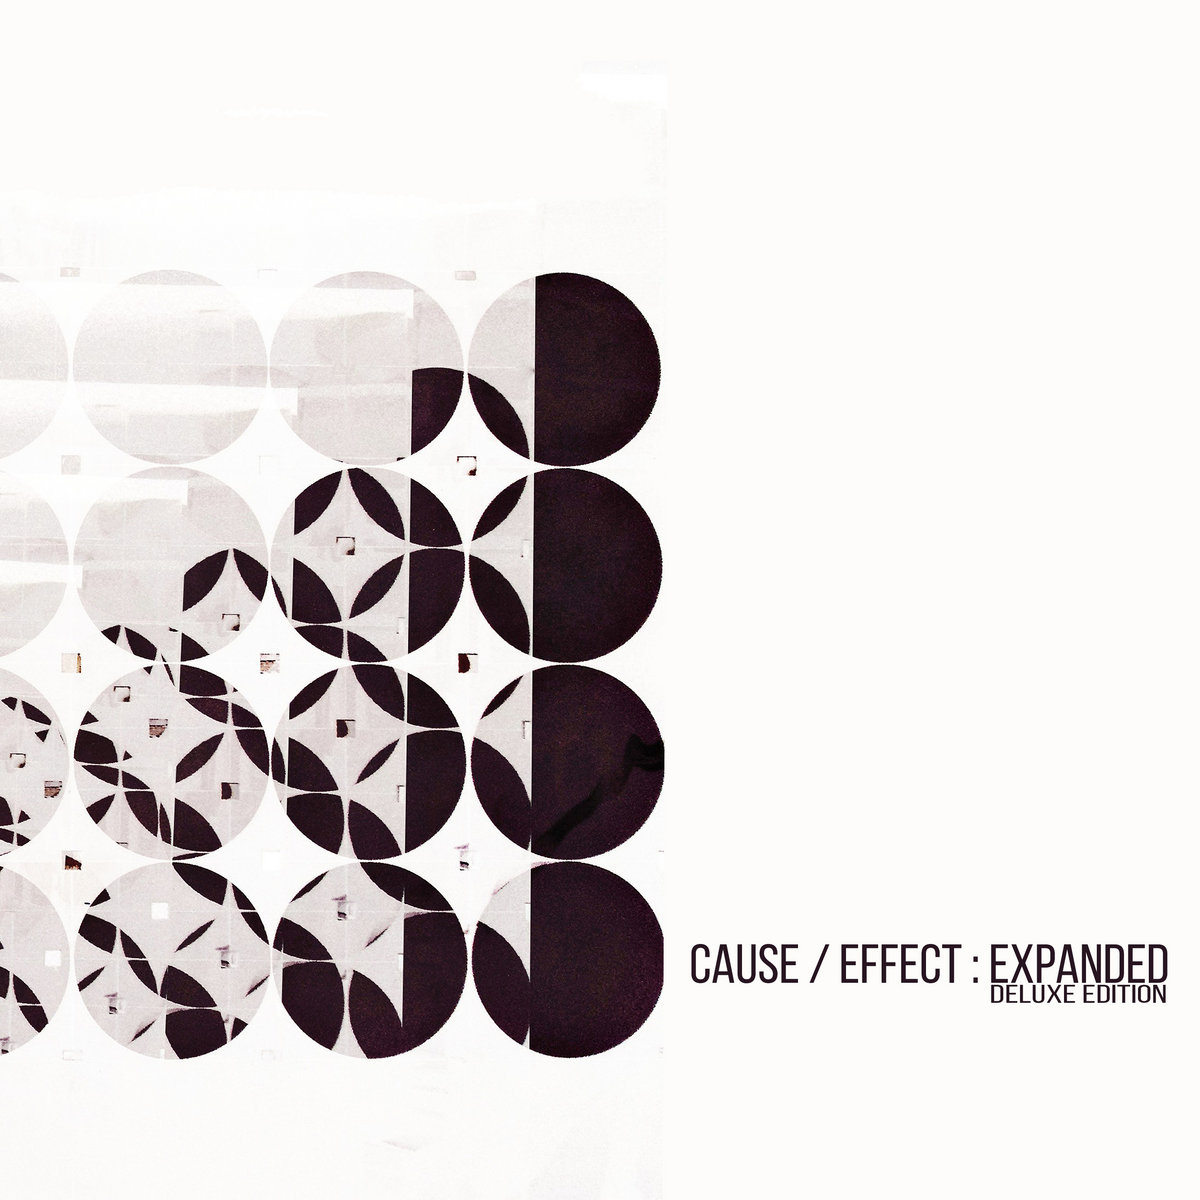 Cause / Effect: Expanded (Deluxe Edition)   Confusion Inc